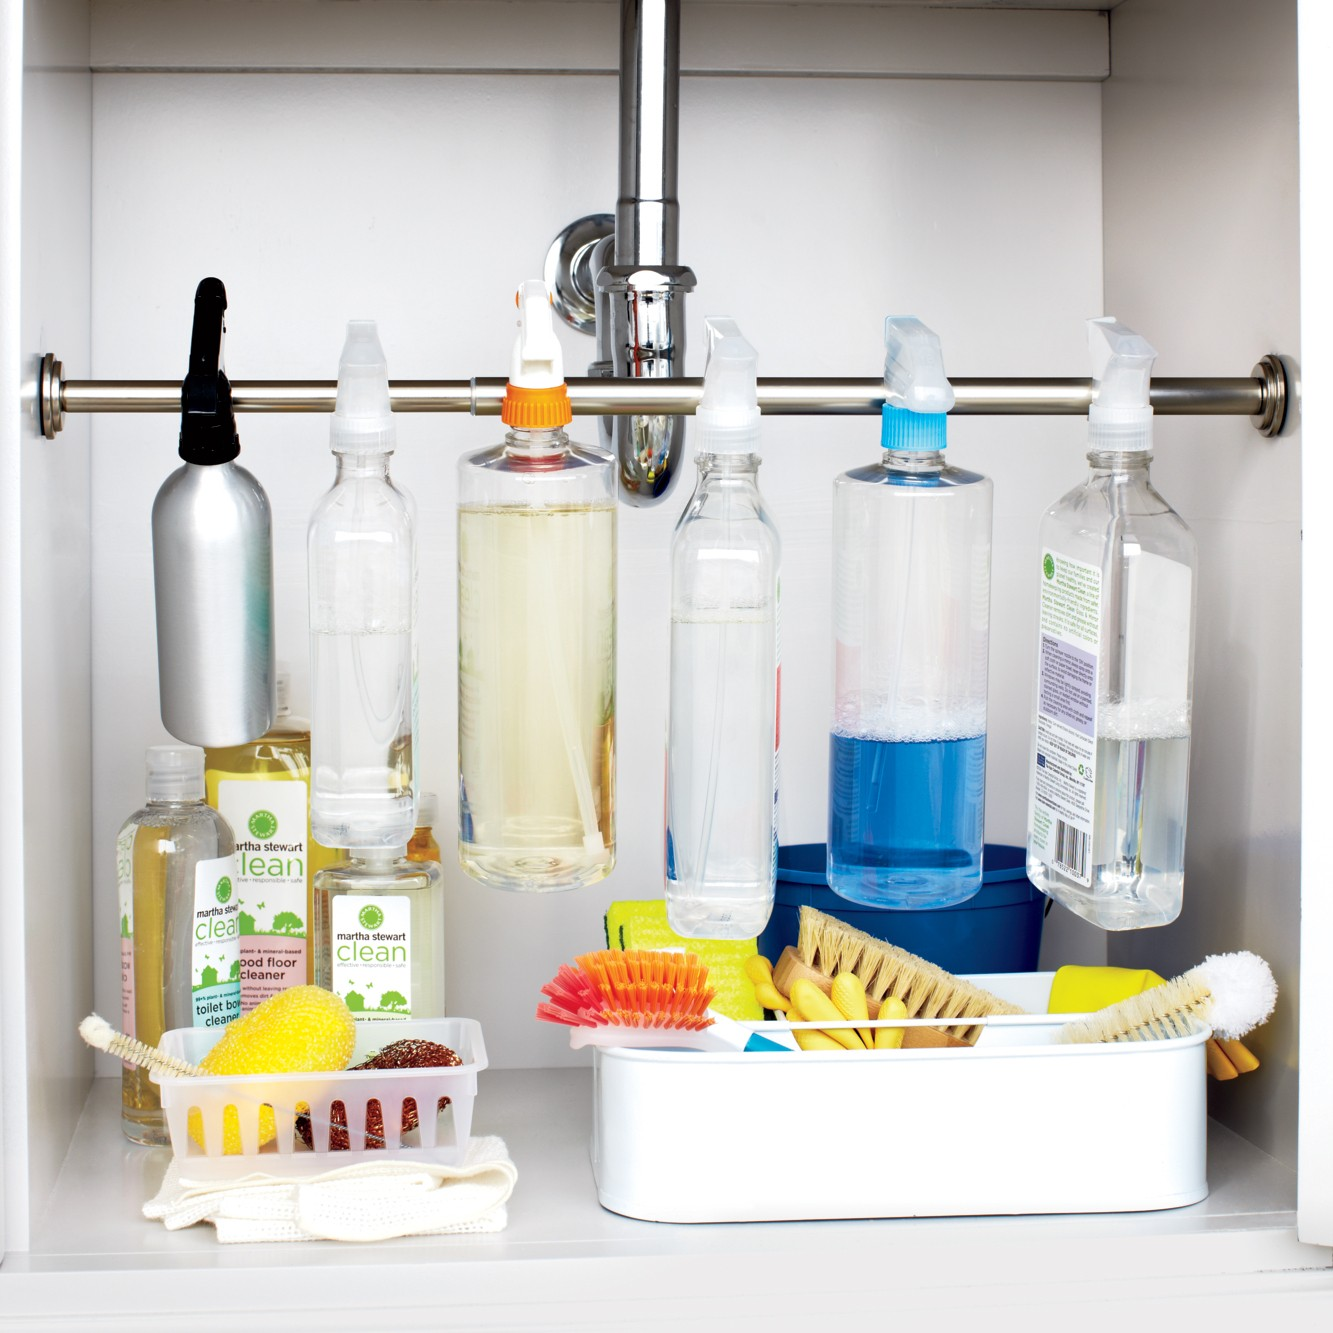 Use the Tension Rod under Your Sink to Store Cleaners